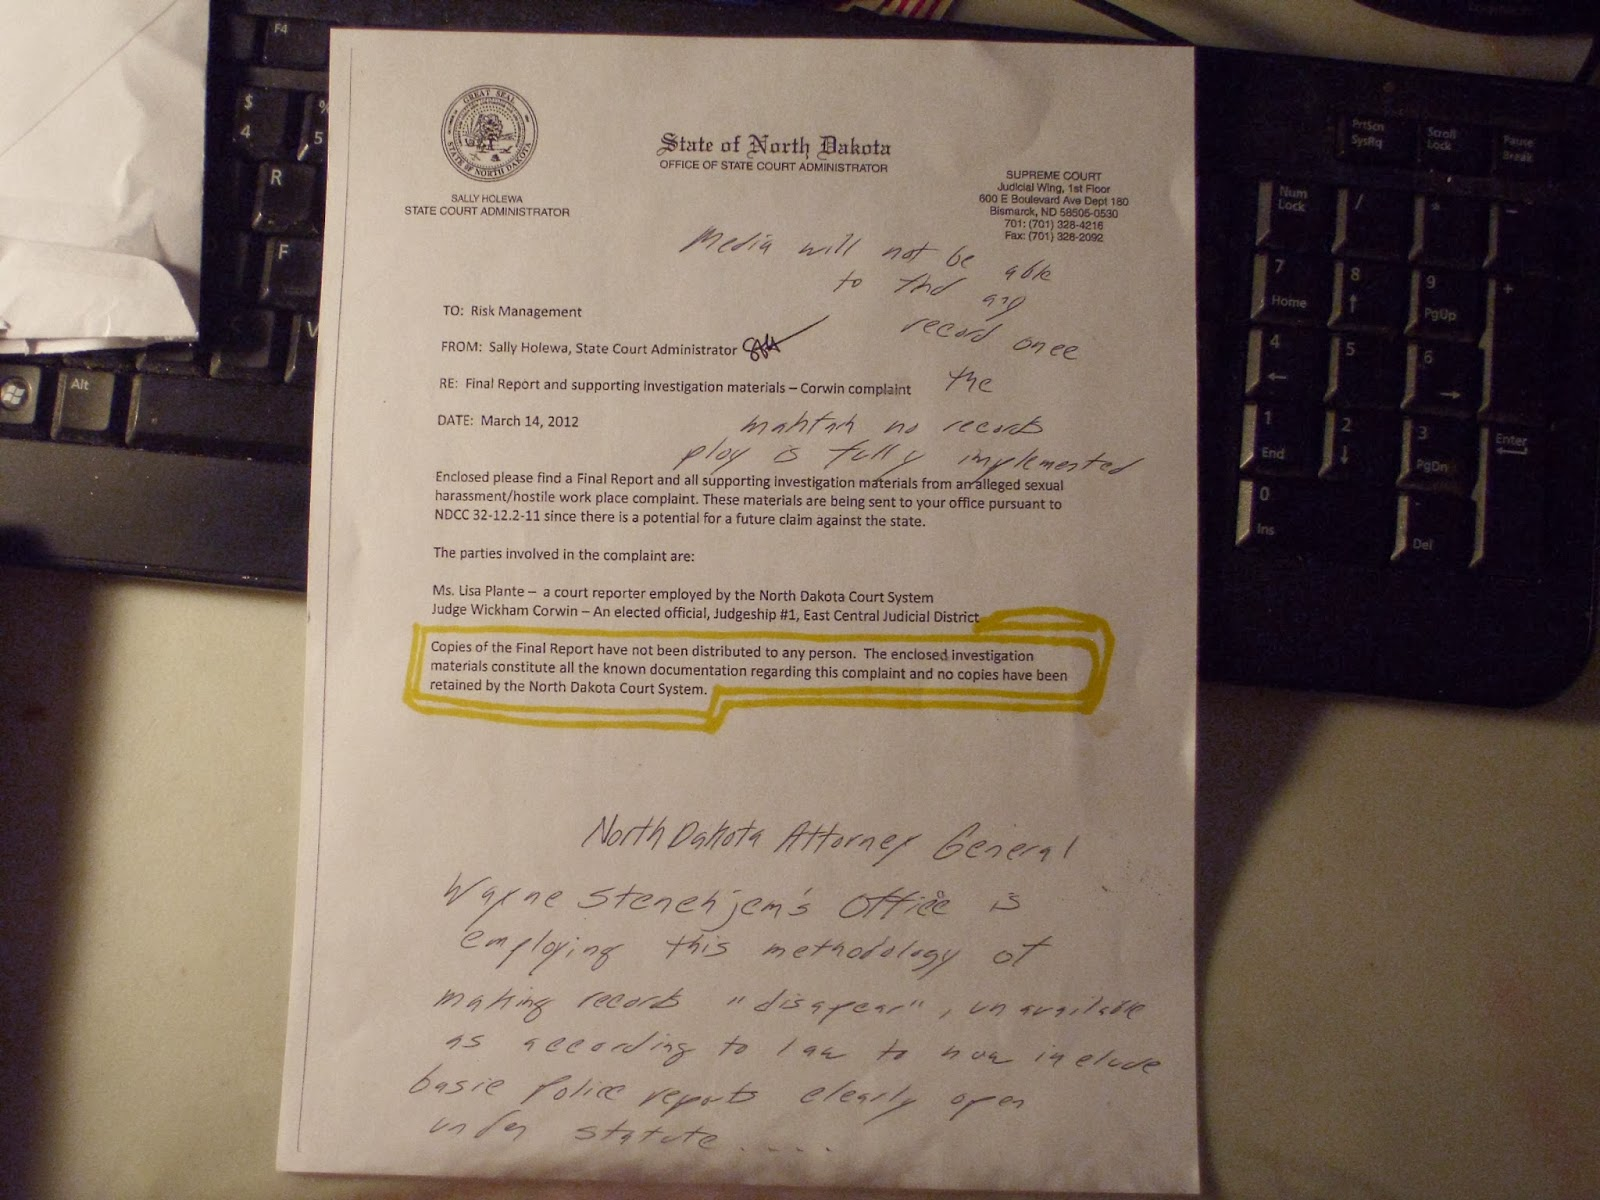 On March 12, 2012, Sally Howela, North Dakota State Court Administrator   In An Apparent Attempt To Keep A State Courts Investigation Out Of The  Hands Of